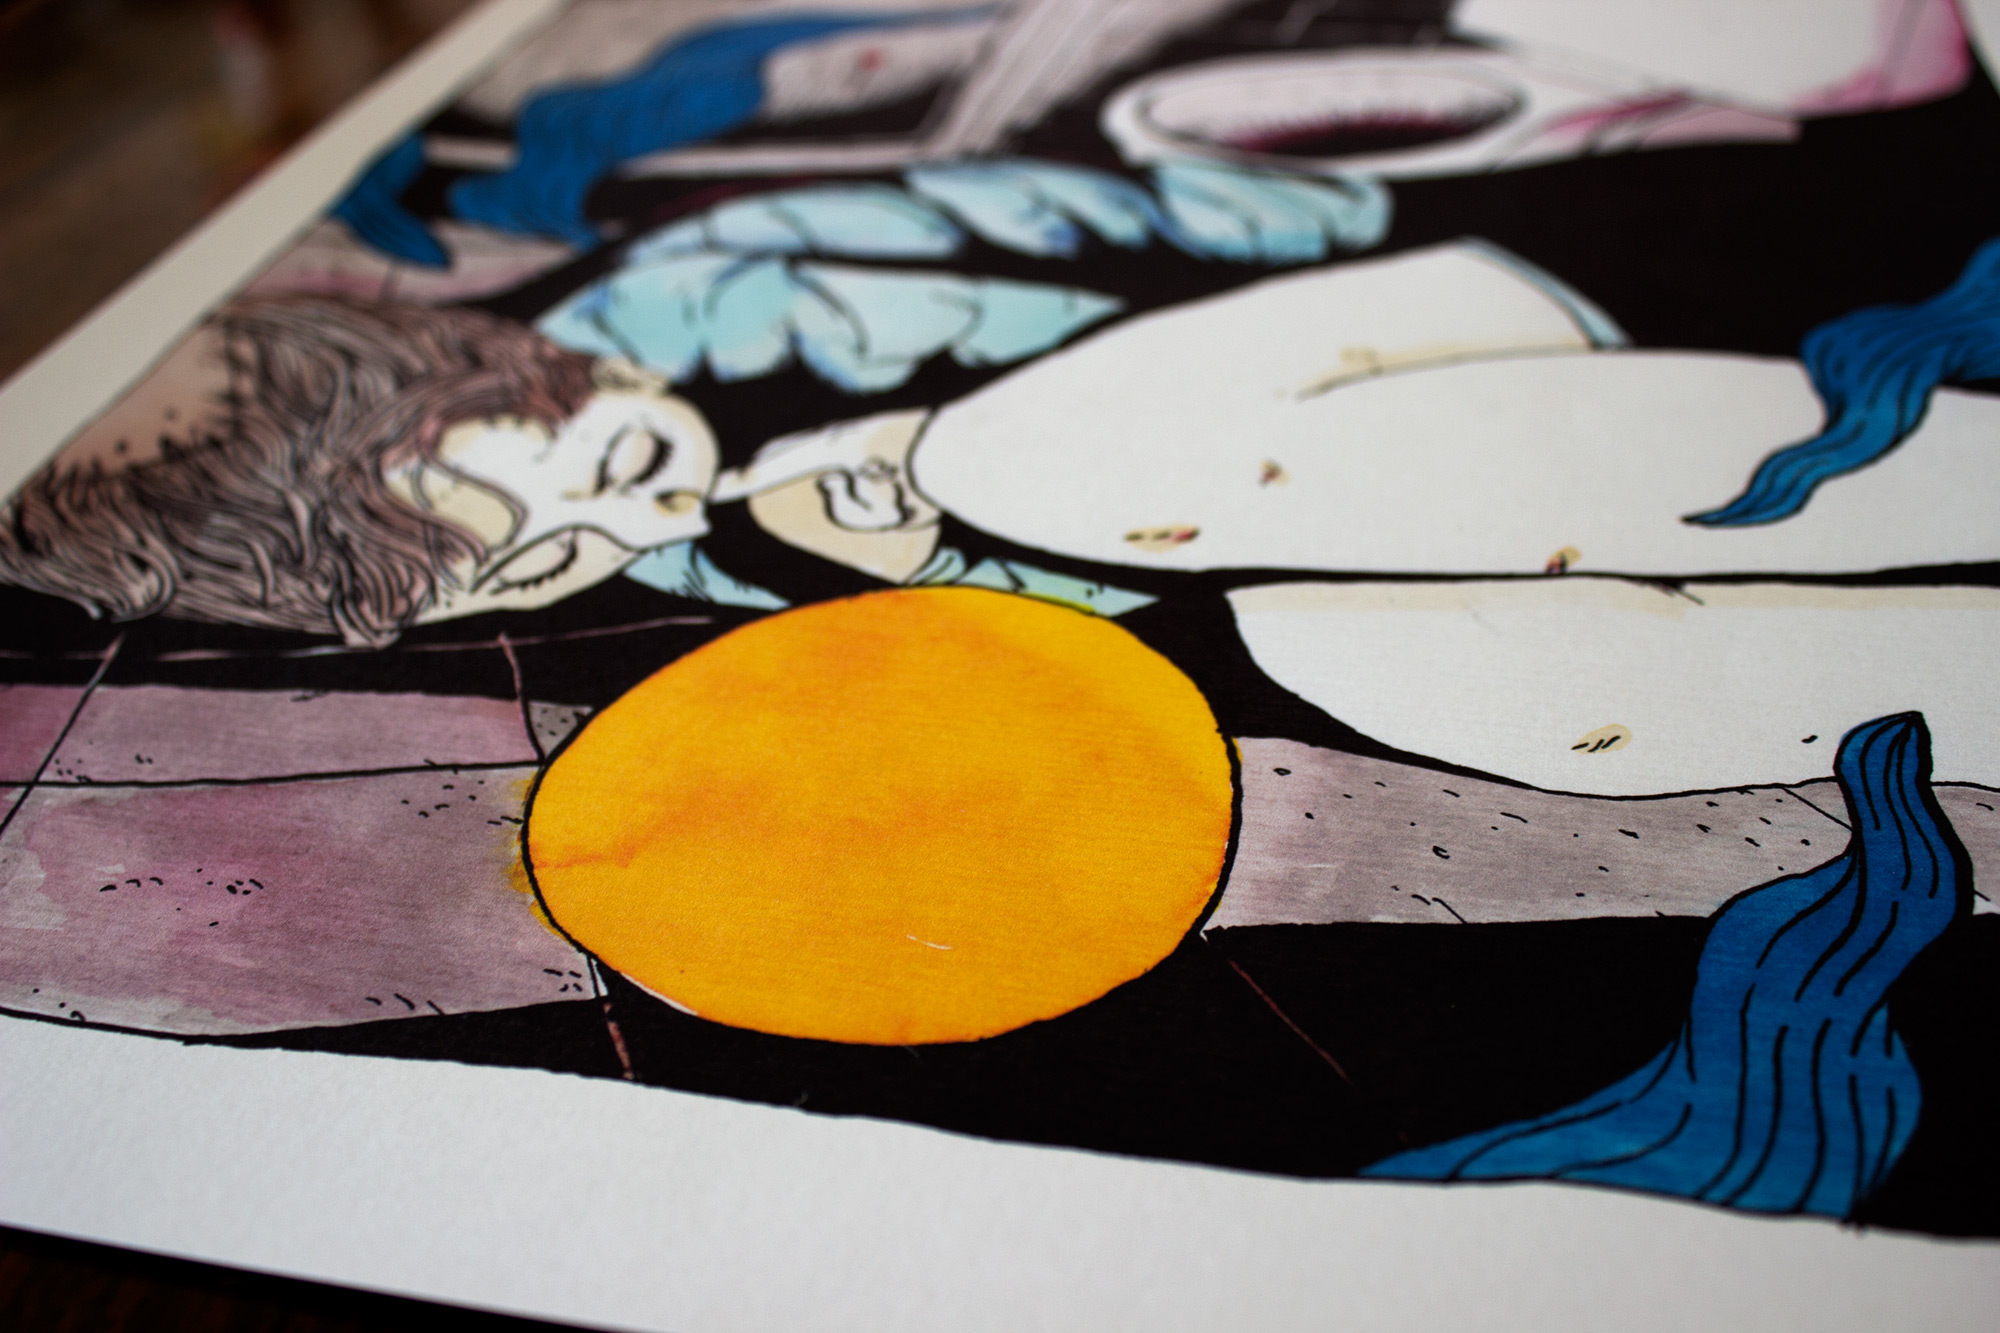 art-prints, gliceé, figurative, graphical, illustrative, portraiture, bodies, cartoons, people, black, blue, white, yellow, paper, marker, watercolor, contemporary-art, danish, decorative, design, expressionism, interior, interior-design, modern, modern-art, nordic, scandinavien, vivid, Buy original high quality art. Paintings, drawings, limited edition prints & posters by talented artists.